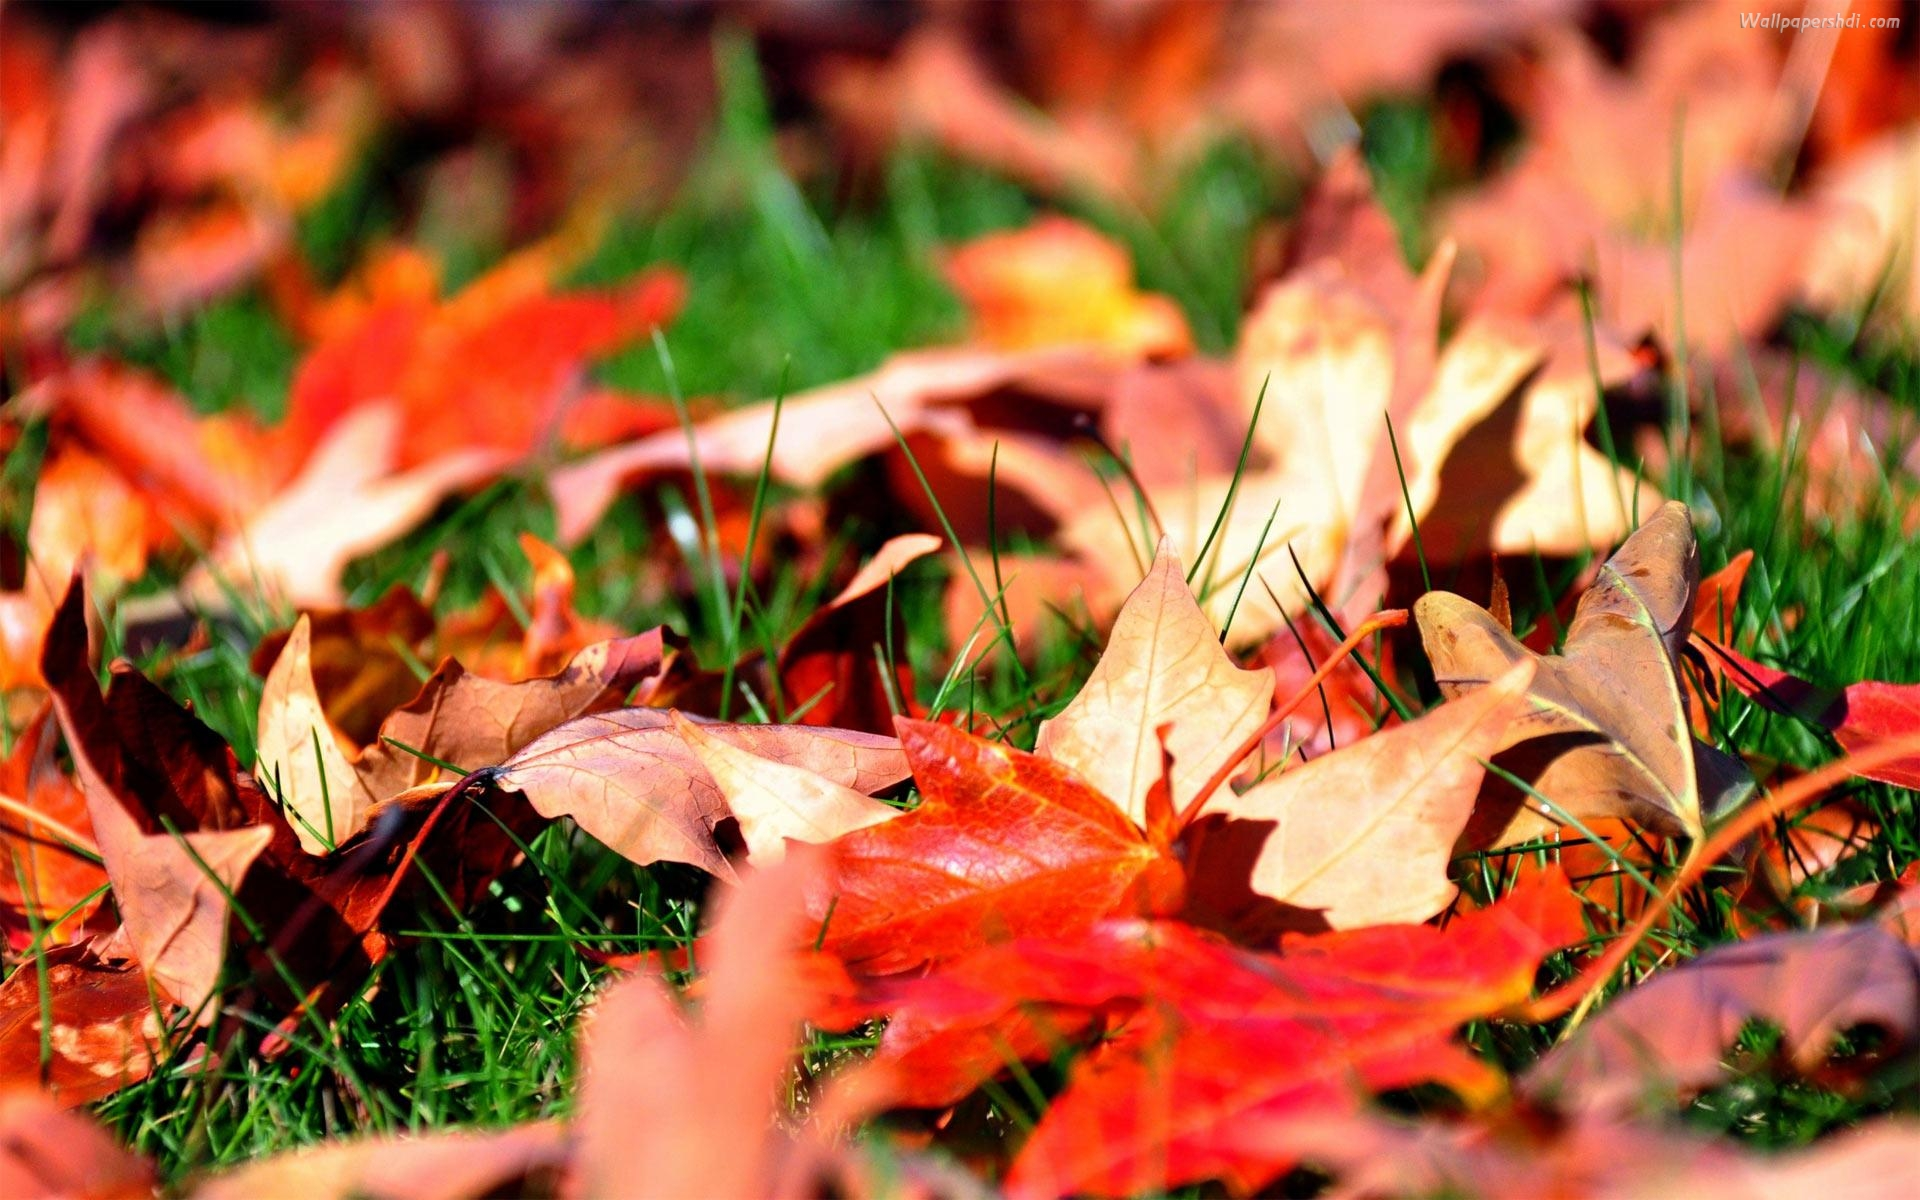 Fall Leaves Hd Wallpapers 1080p Autumn Leaves Wallpapers High Quality Download Free